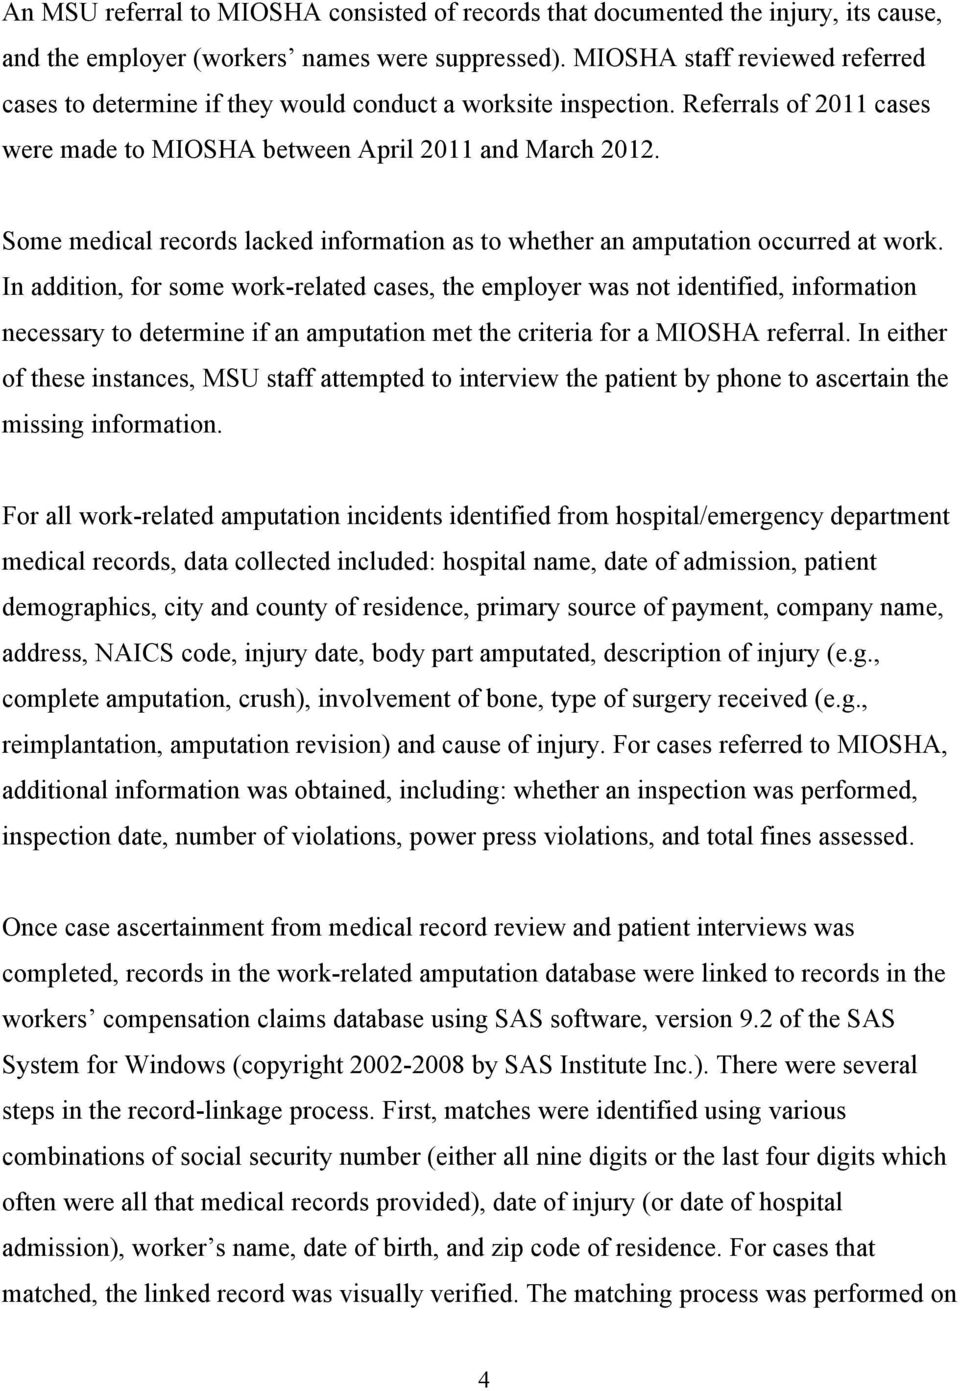 Some medical records lacked information as to whether an amputation occurred at work.